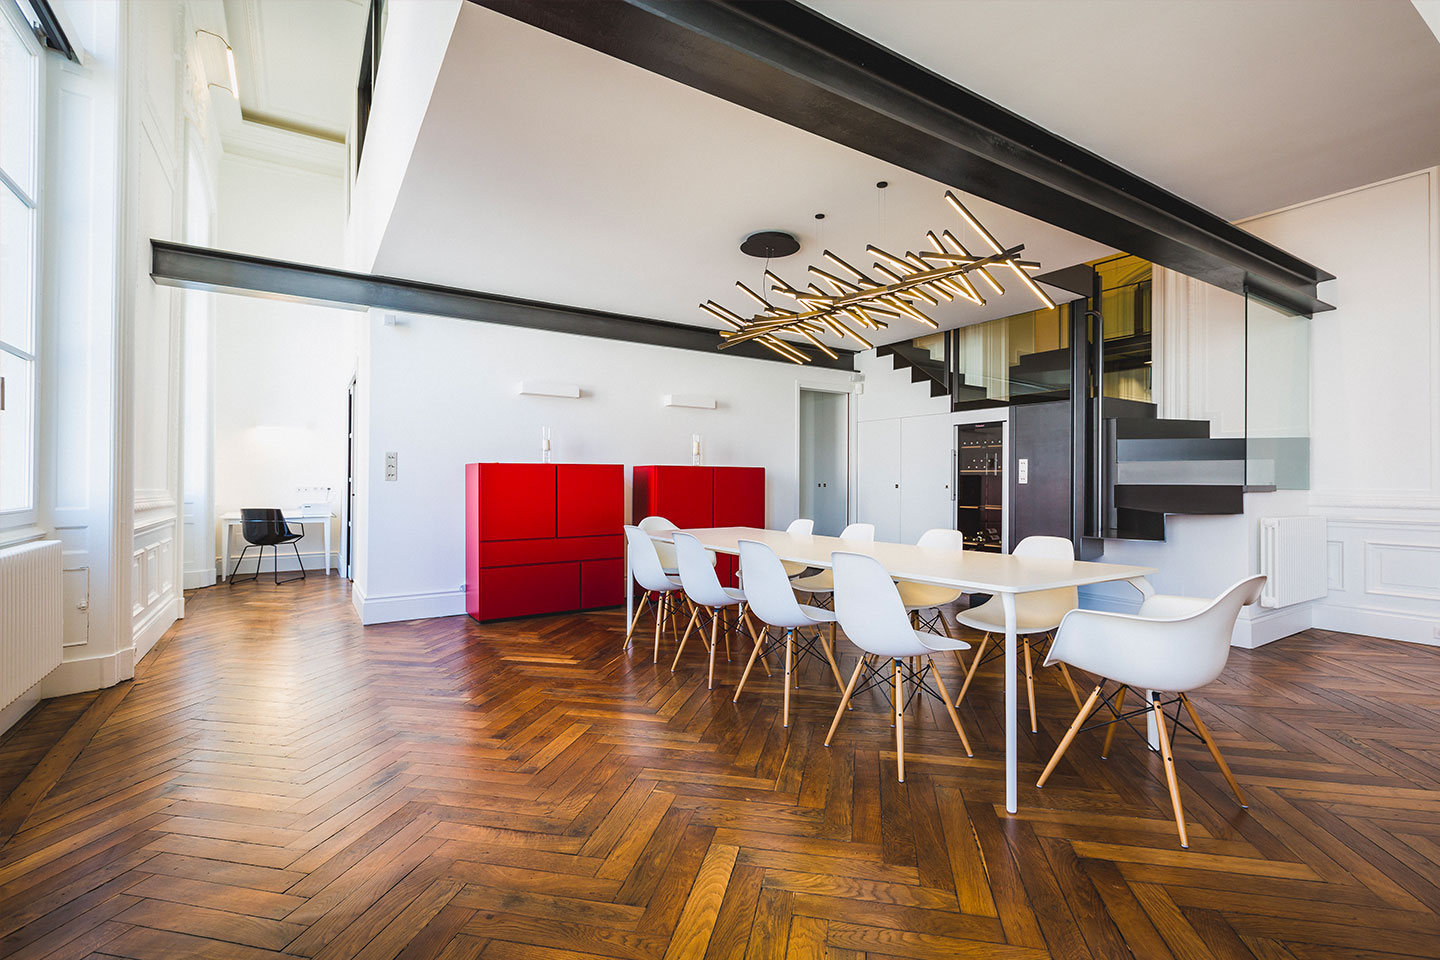 06 Location Biarritz LOFT